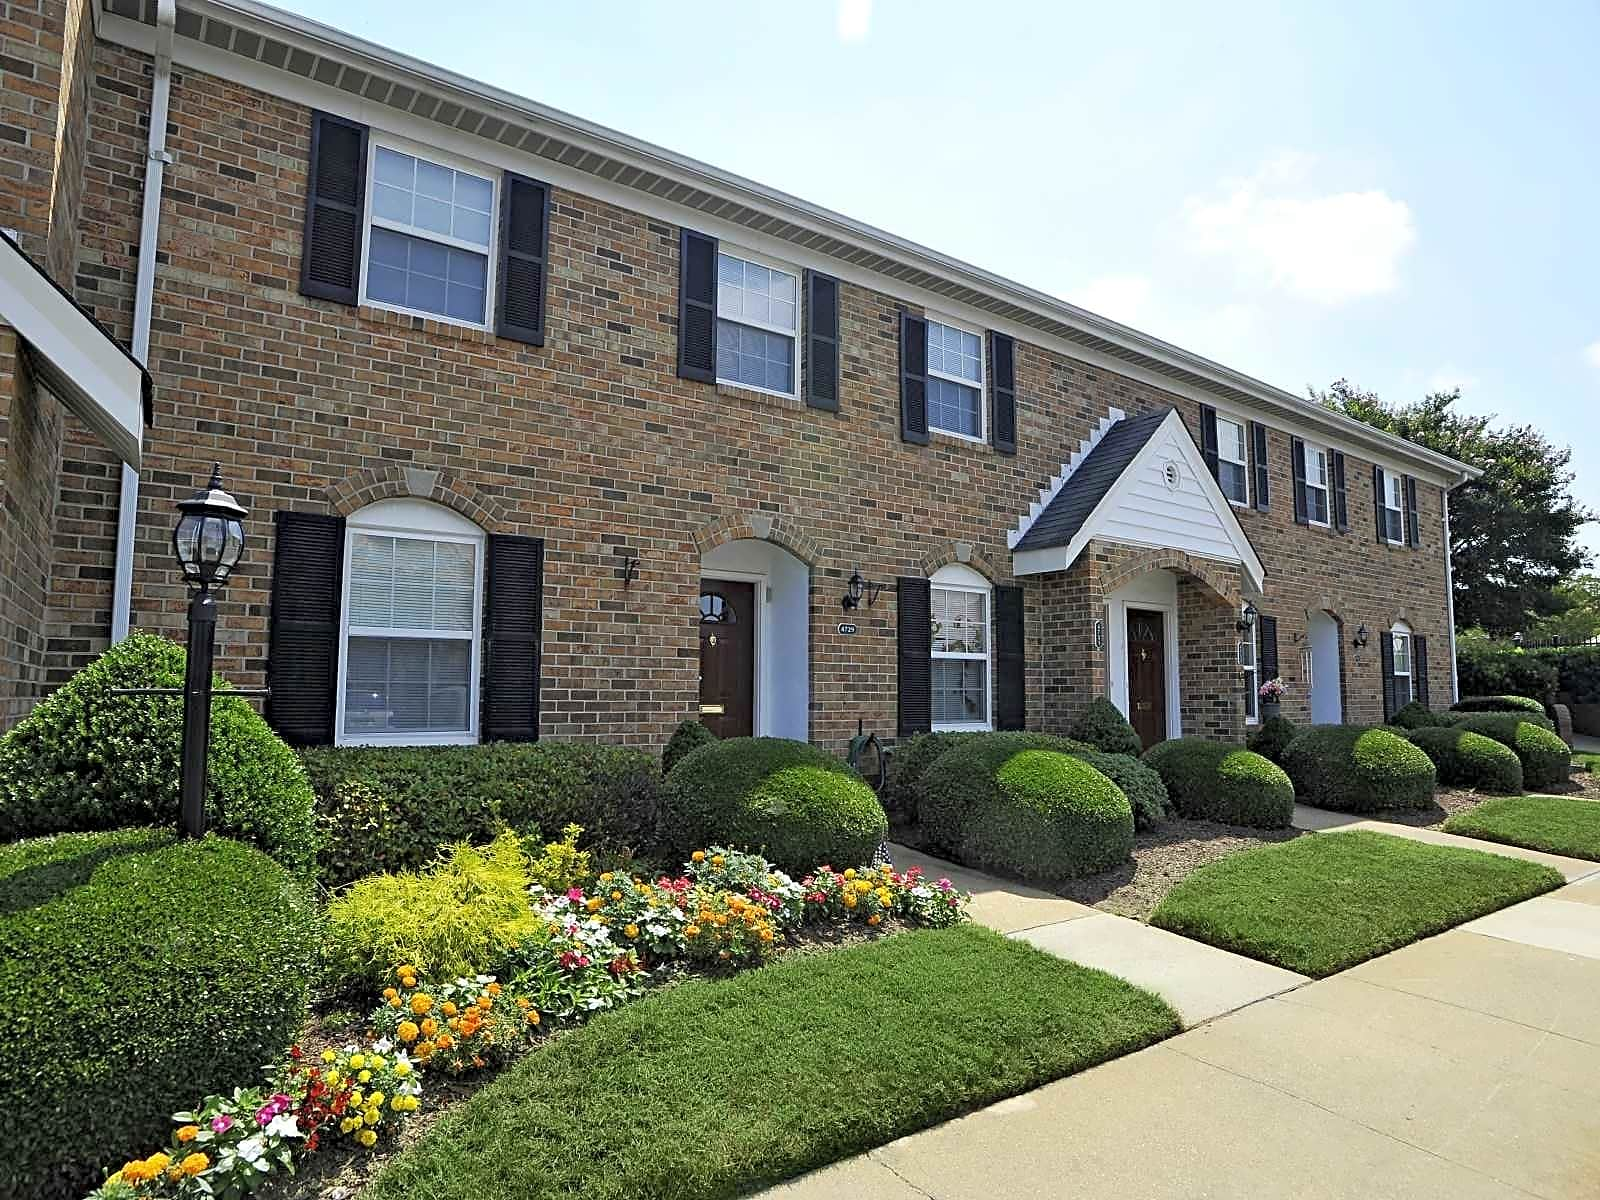 Brick exteriors with lush landscaping